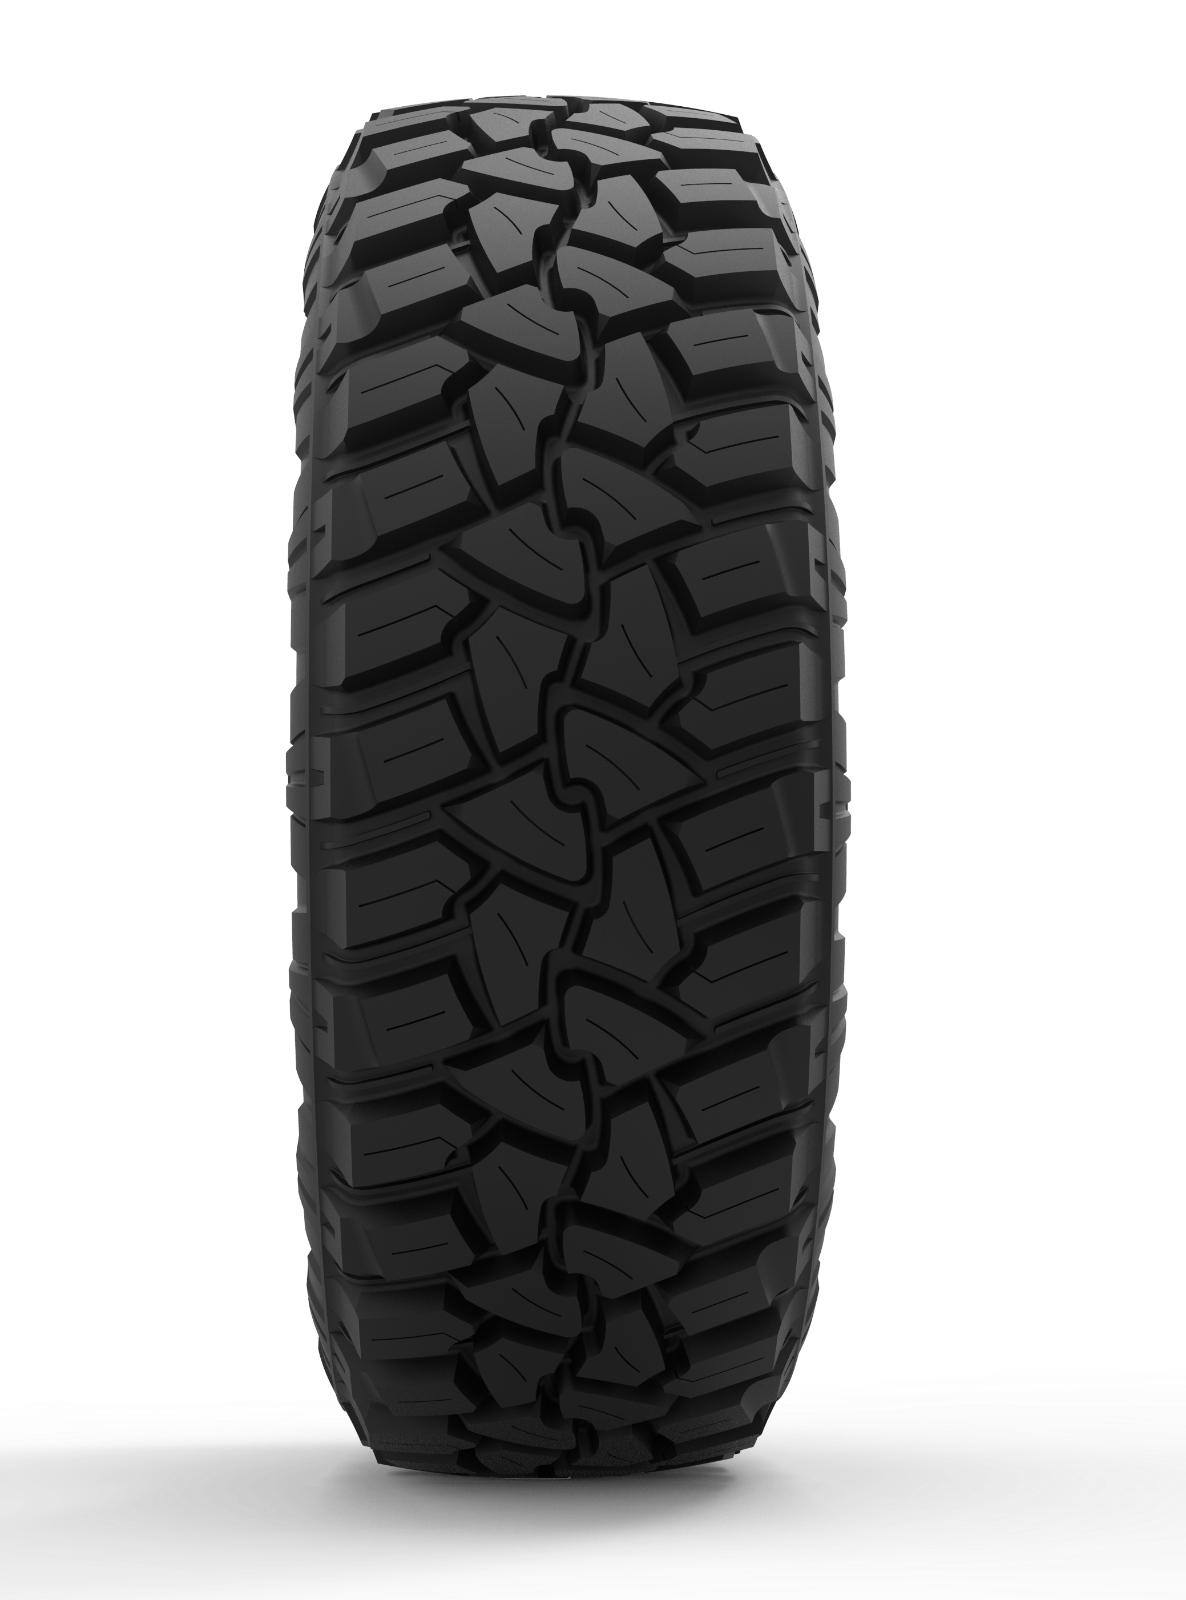 42X16.50R30LT FURY OFF-ROAD COUNTRY HUNTER M/T II 127Q 10PLY (SET OF 4) image 2